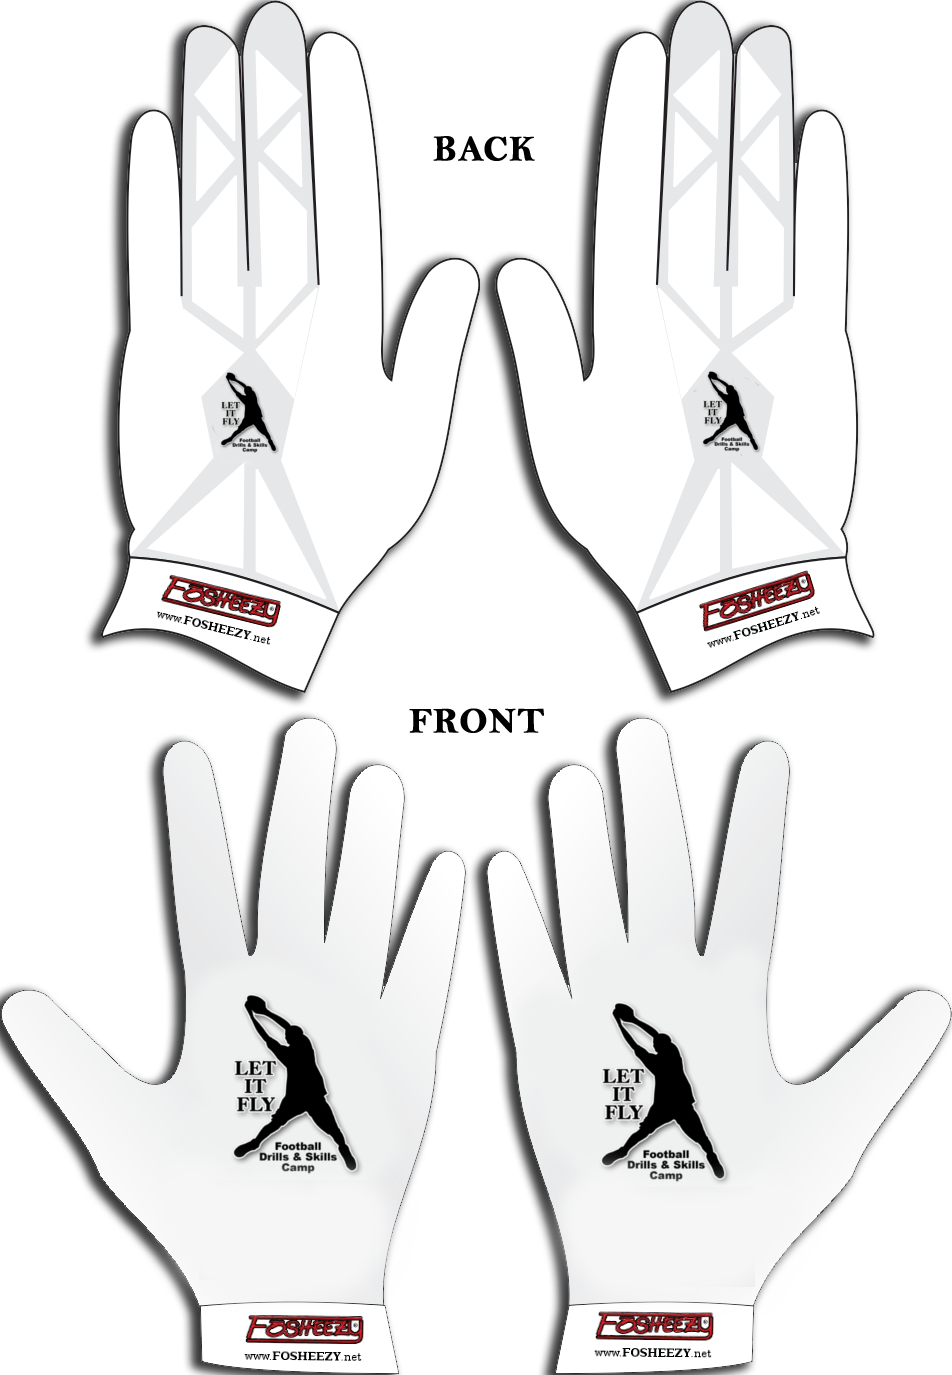 Let it fly drills and skills football camp glove mockup